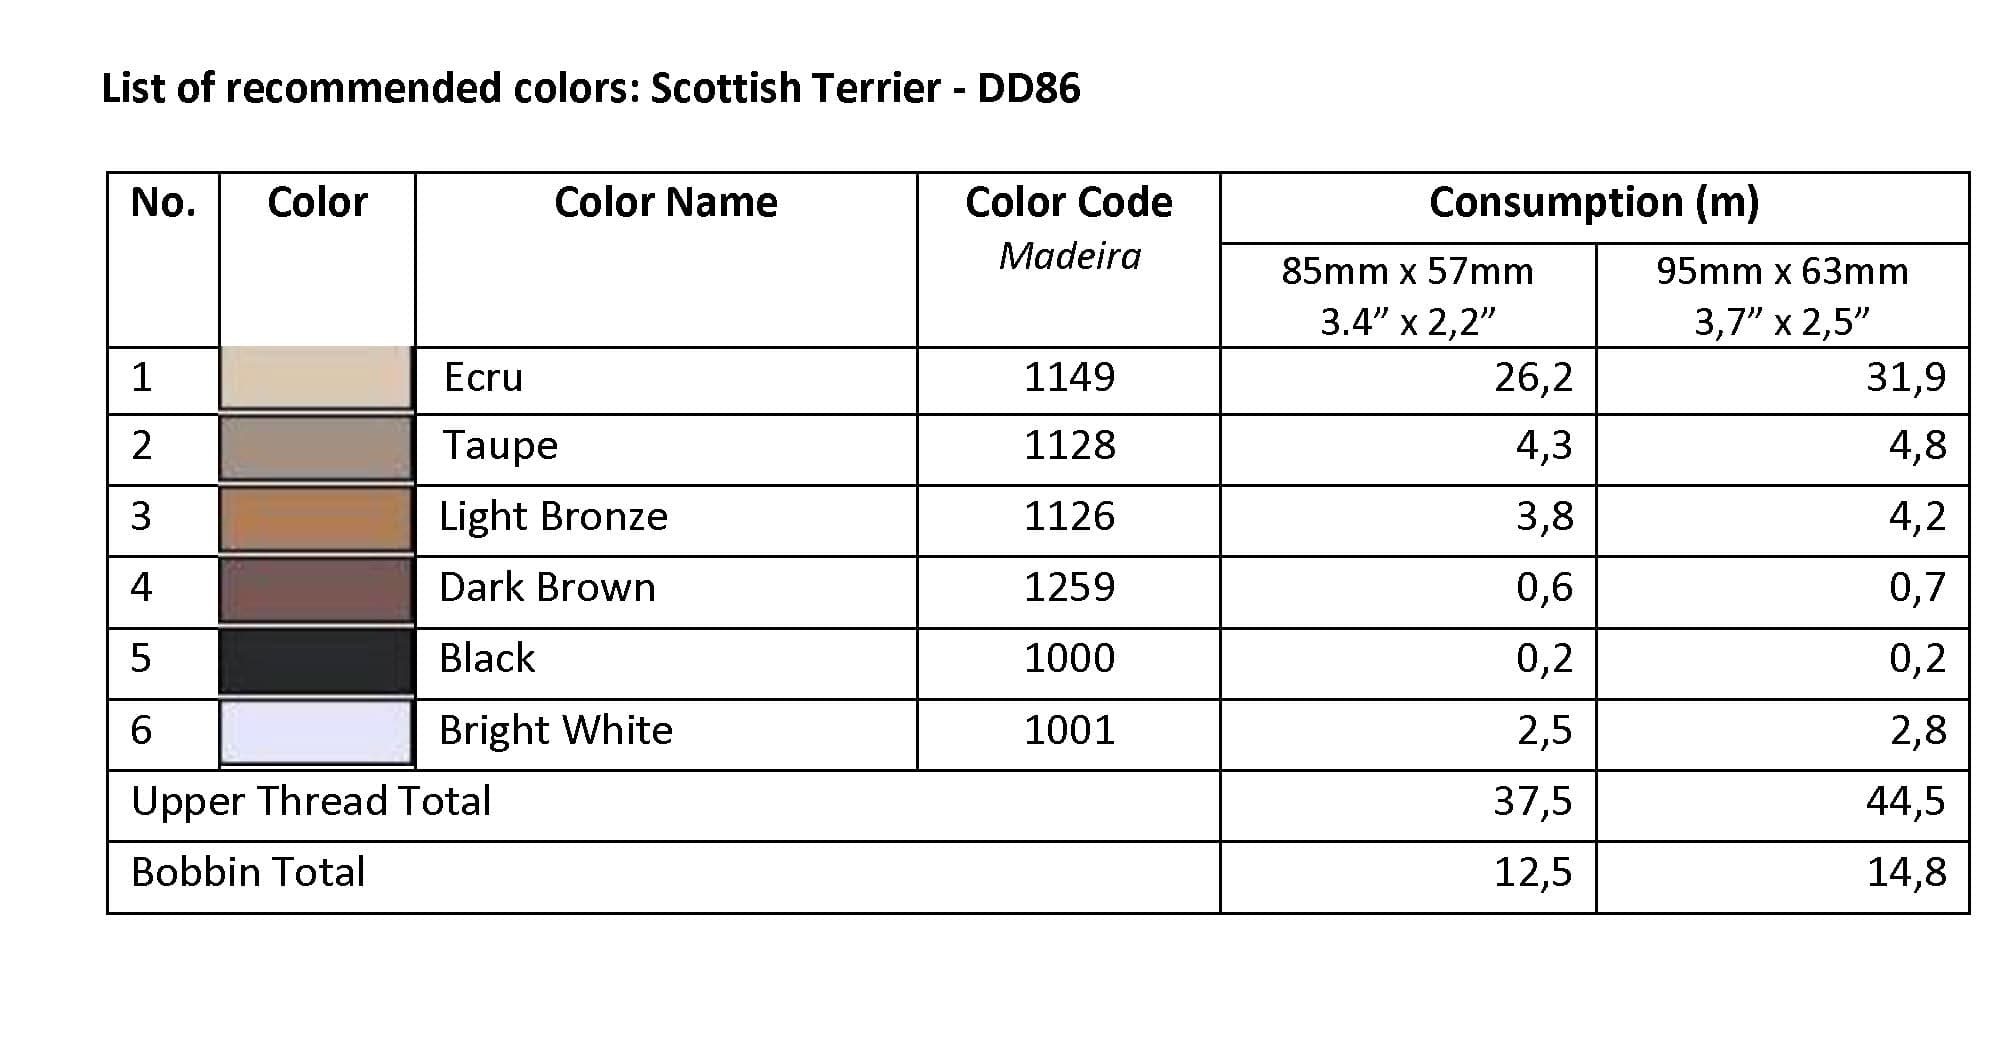 List of Recommended Colors -  Scottish Terrier DD86